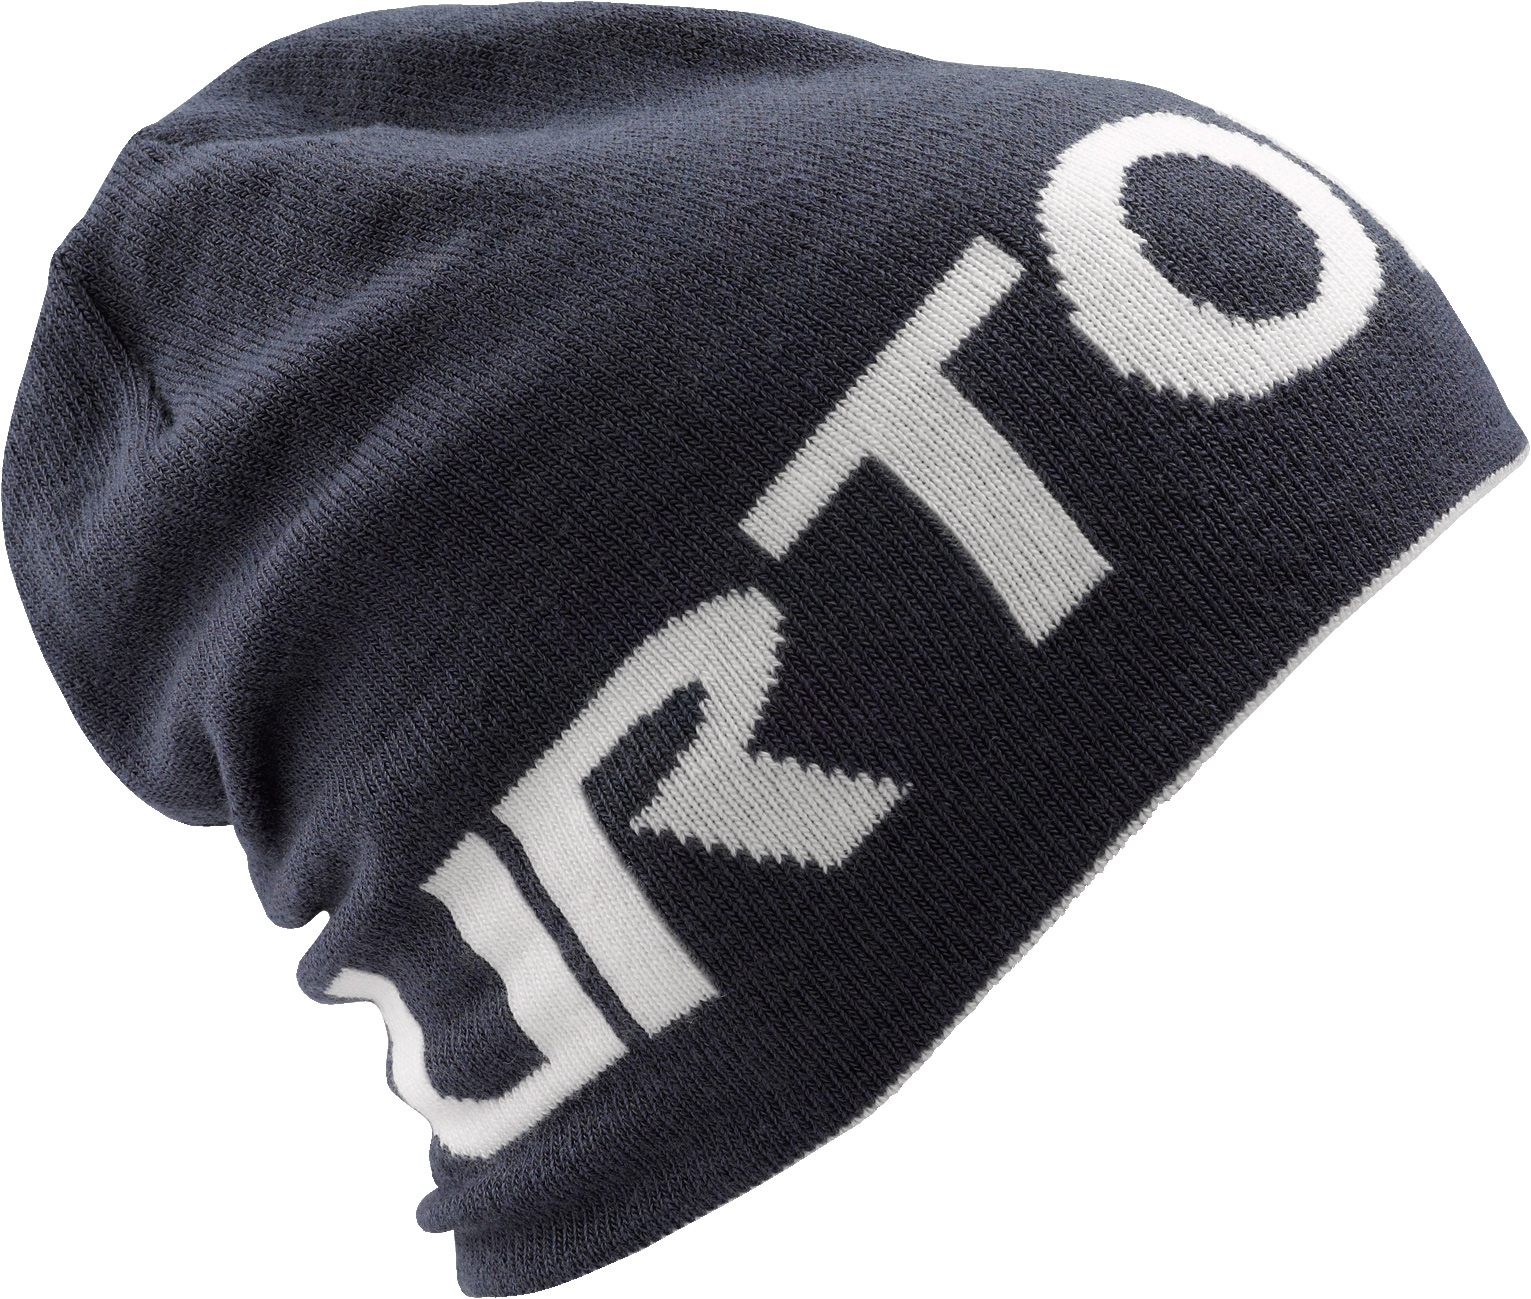 Snowboard The Burton Billboard Beanie is made from a typical acrylic material with a fleece lining that gives it a lasting, yet comfortable feel. It is ideal for skiing and snowboarding, but the slouch fit is great for casual wear during the winter. Bear the Billboard Beanie off at home, school and movie theaters. It is stylish with enough shelter to keep unwanted rain and snowfall from getting too close and allows a warmer atmosphere for your head. What's better than a warm head Key Features of the Burton Billboard Beanie:  100% Acrylic  Reversible Beanie in Solid Jacquard  Skully Fit - $12.95